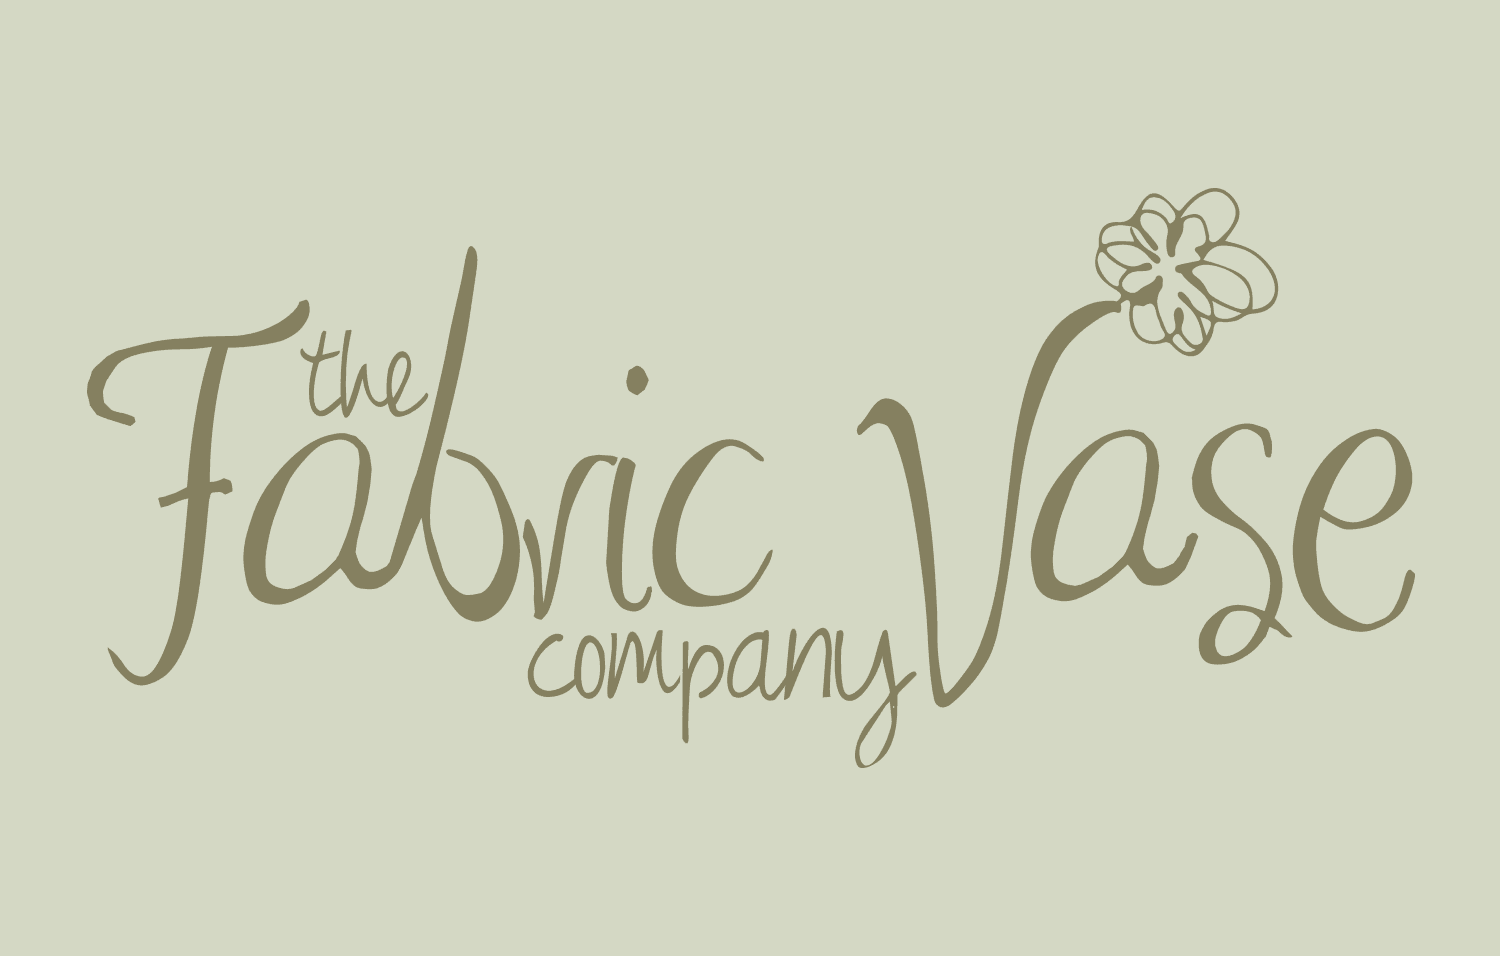 The Fabric Vase Company